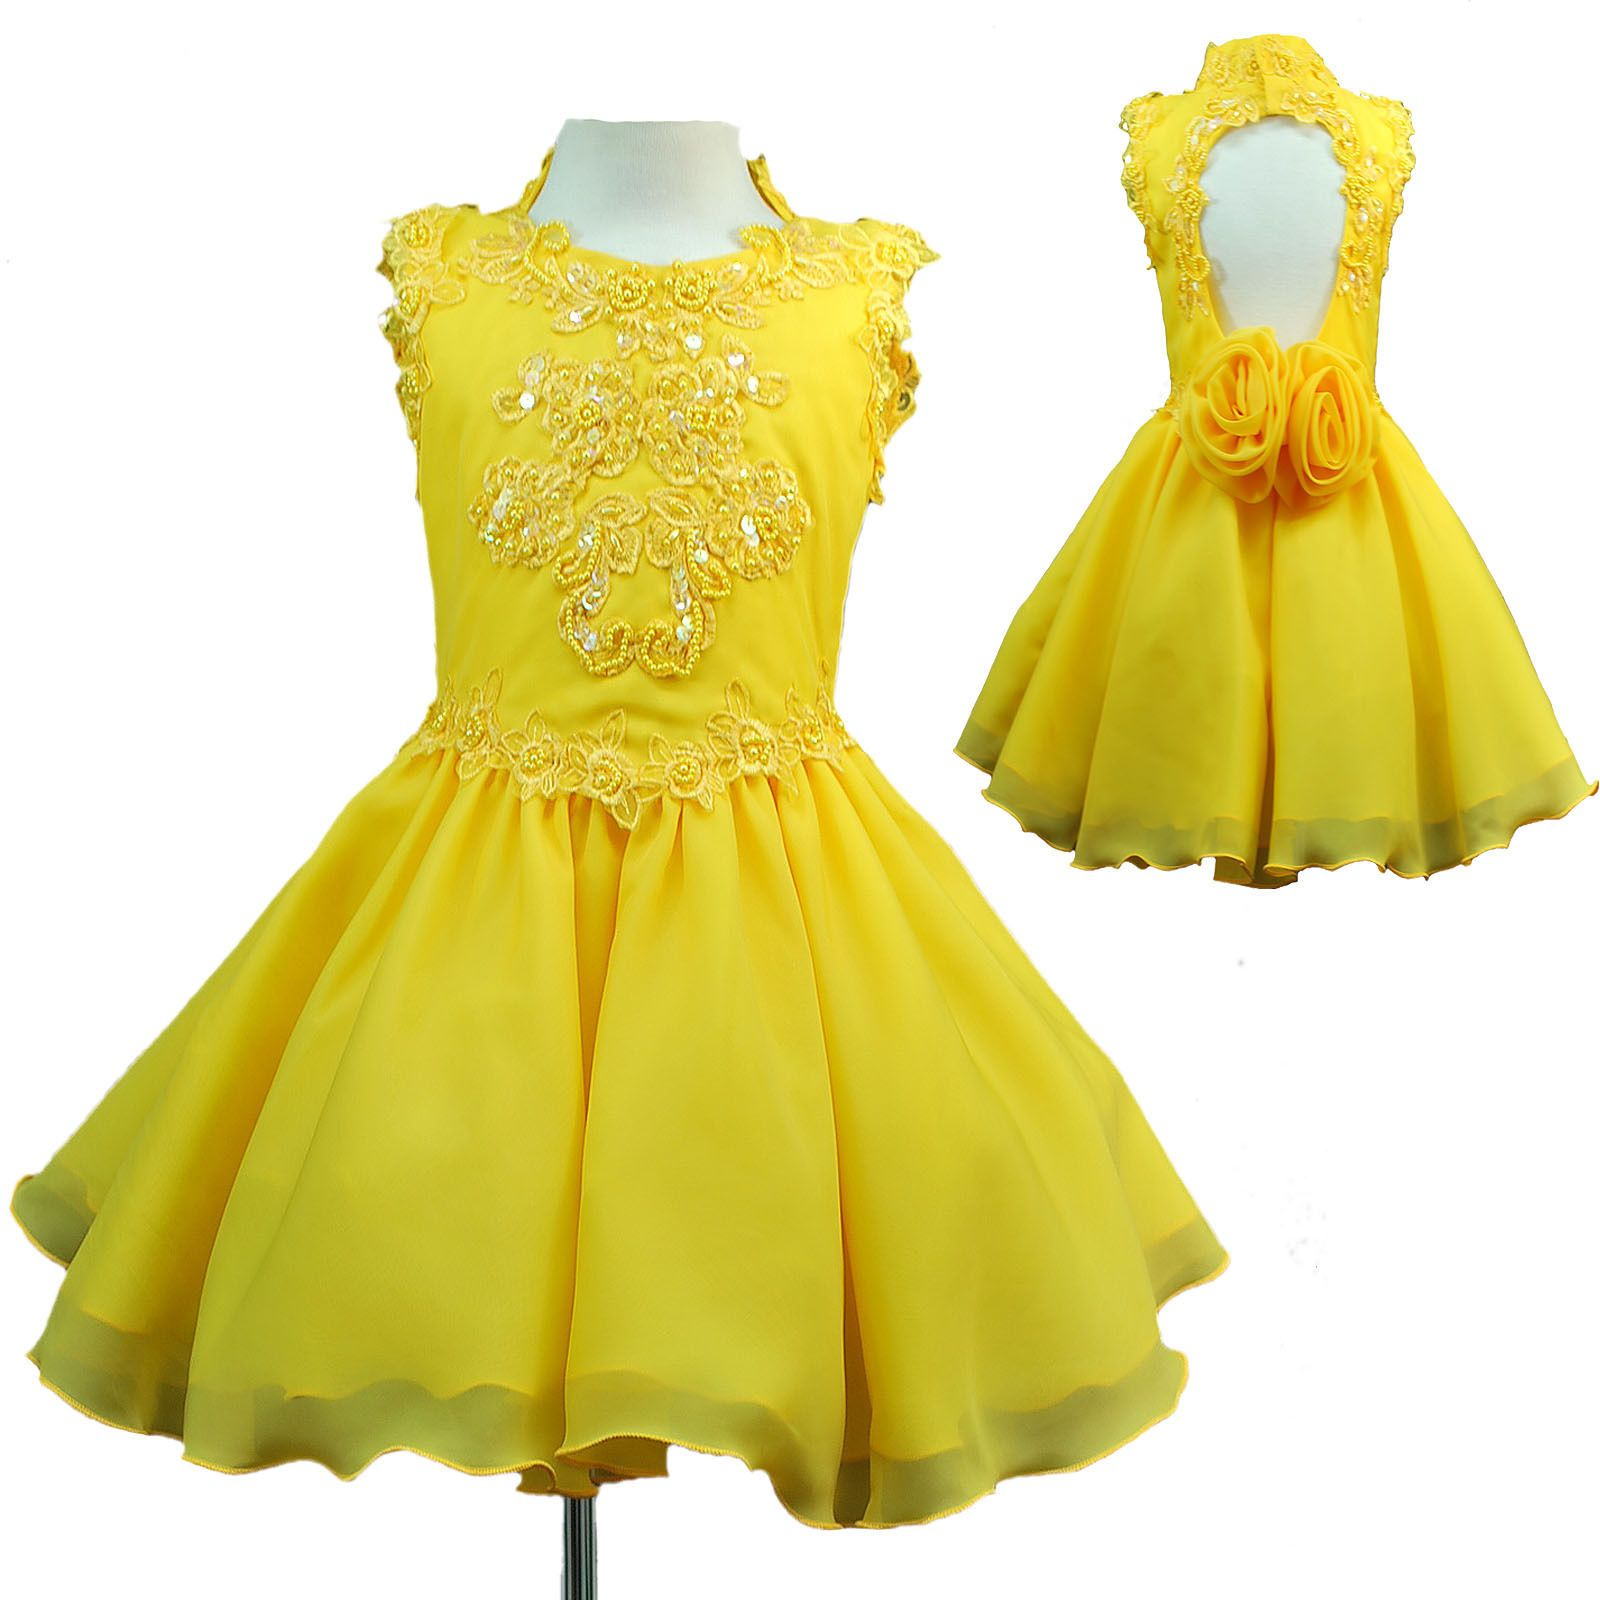 Infant u girl national pageant formal party short dress yellow